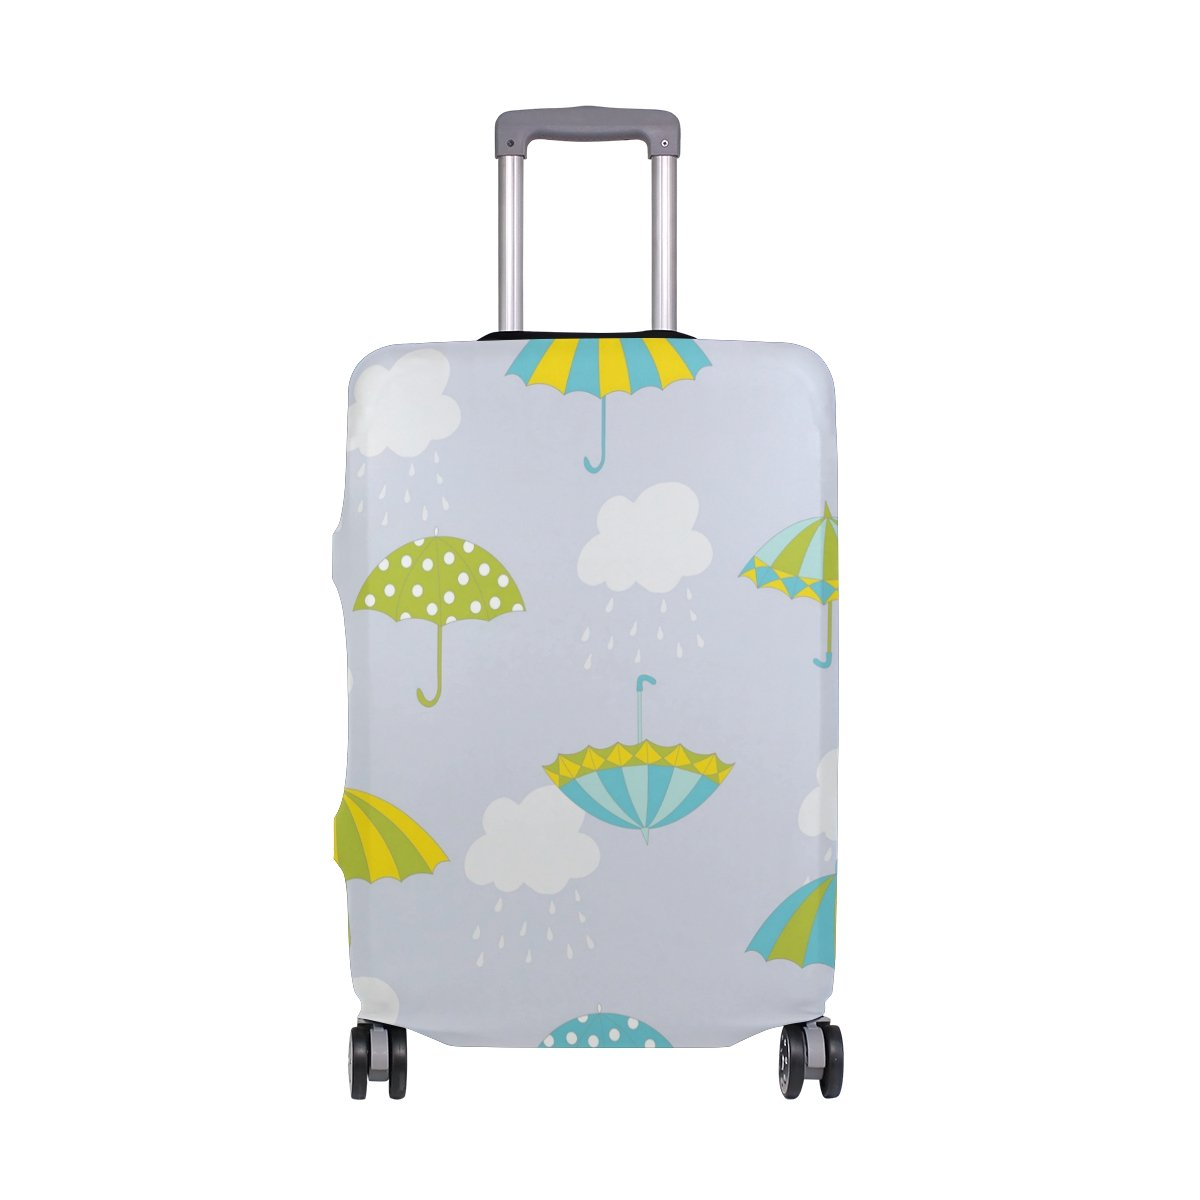 Colorful French Fries Travel Luggage Cover Suitcase Protector Washable Zipper Baggage Cover